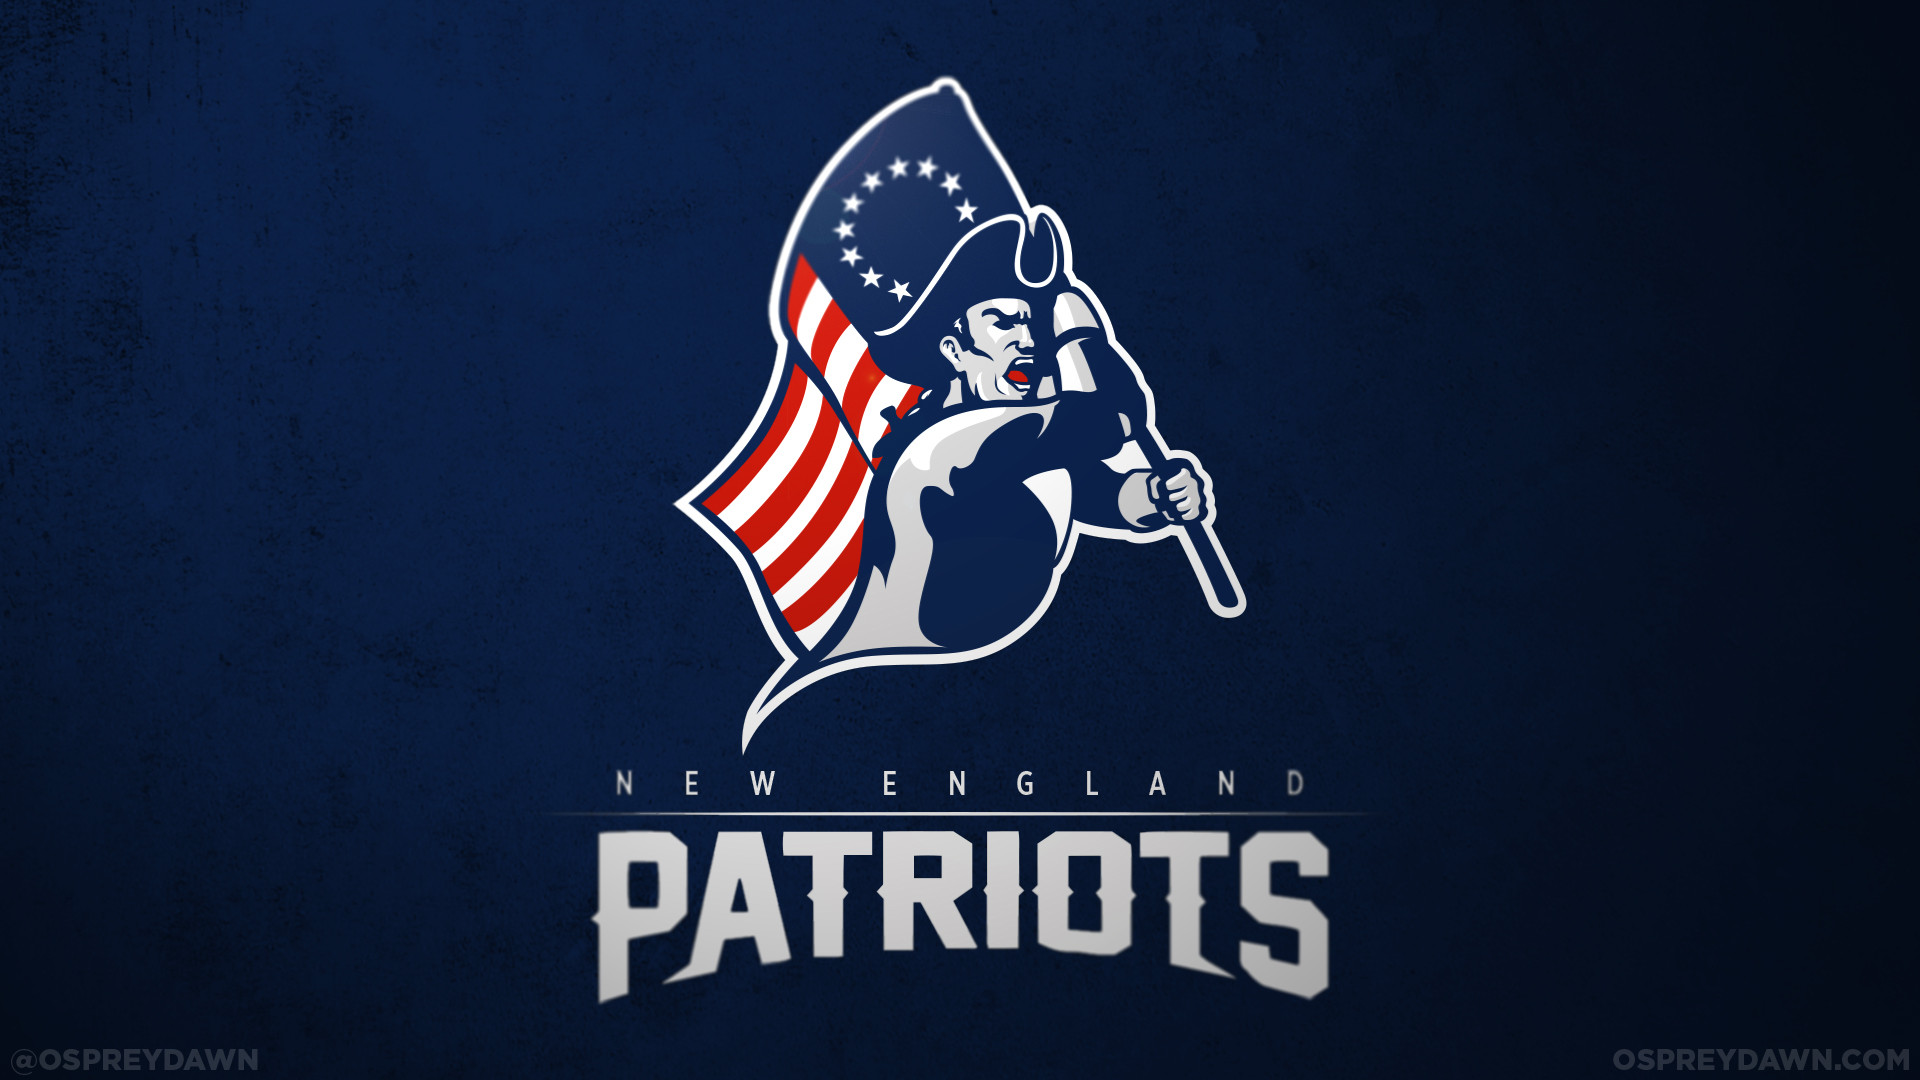 New england patriots colony crisis averted alternative history the new england patriots are a professional american football team based in the greater boston area the patriots play their home games at gillette stadium voltagebd Gallery